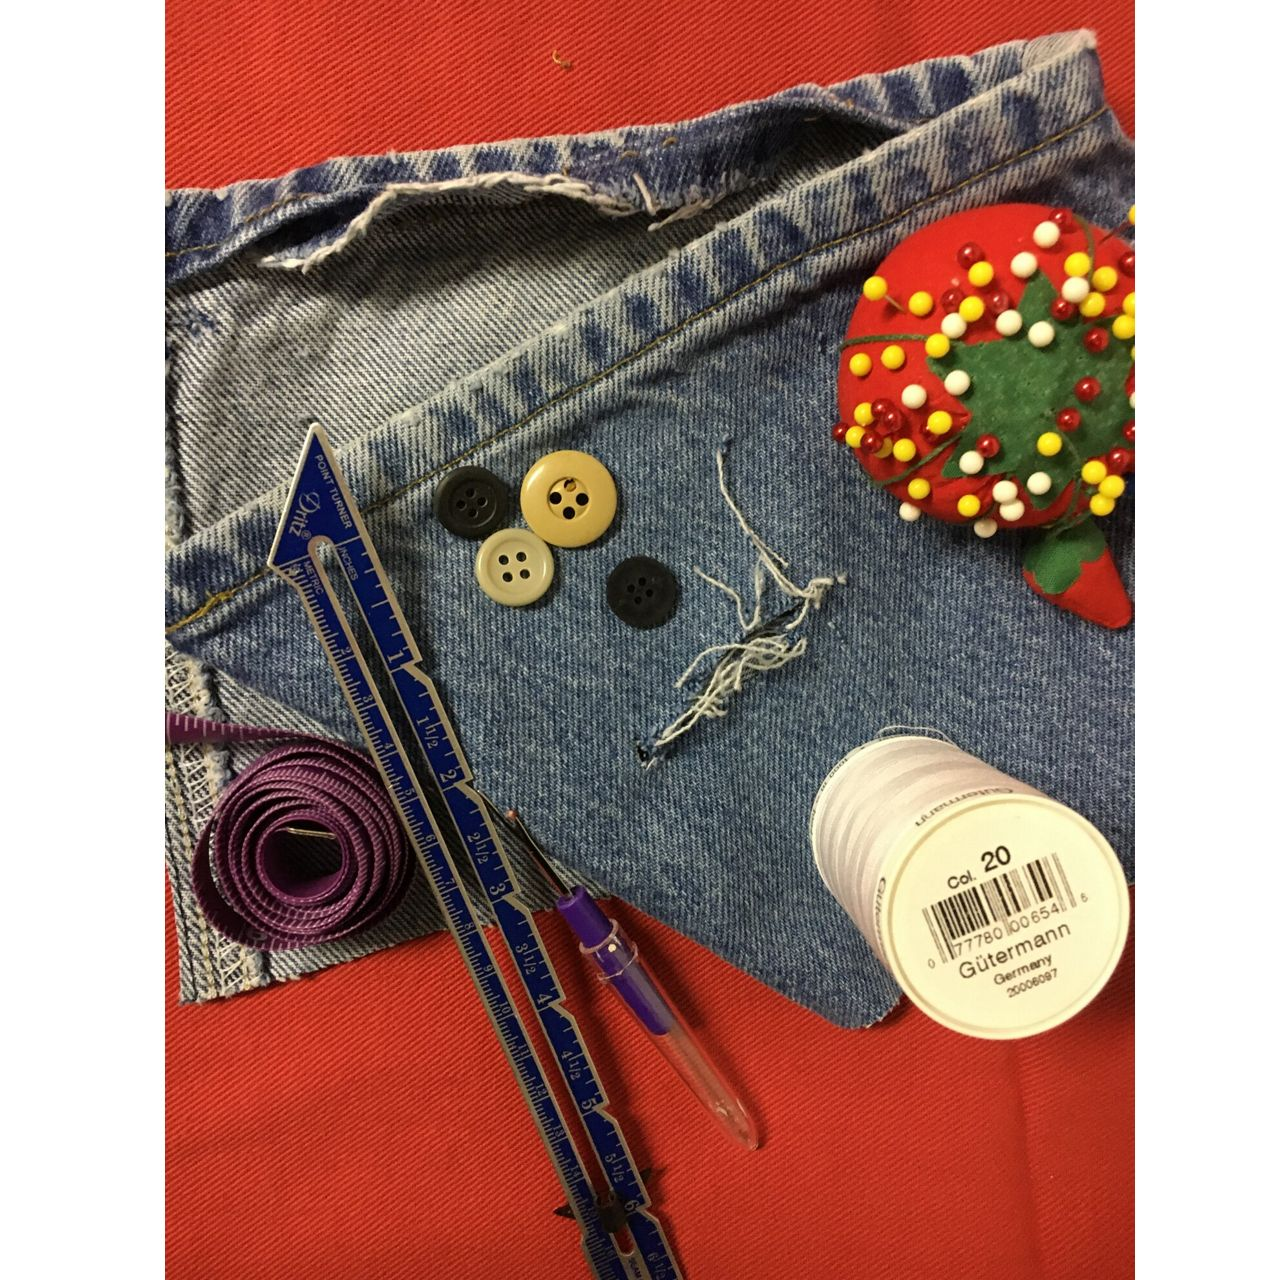 Mending Basics . . . Buttons, Hems and Patches